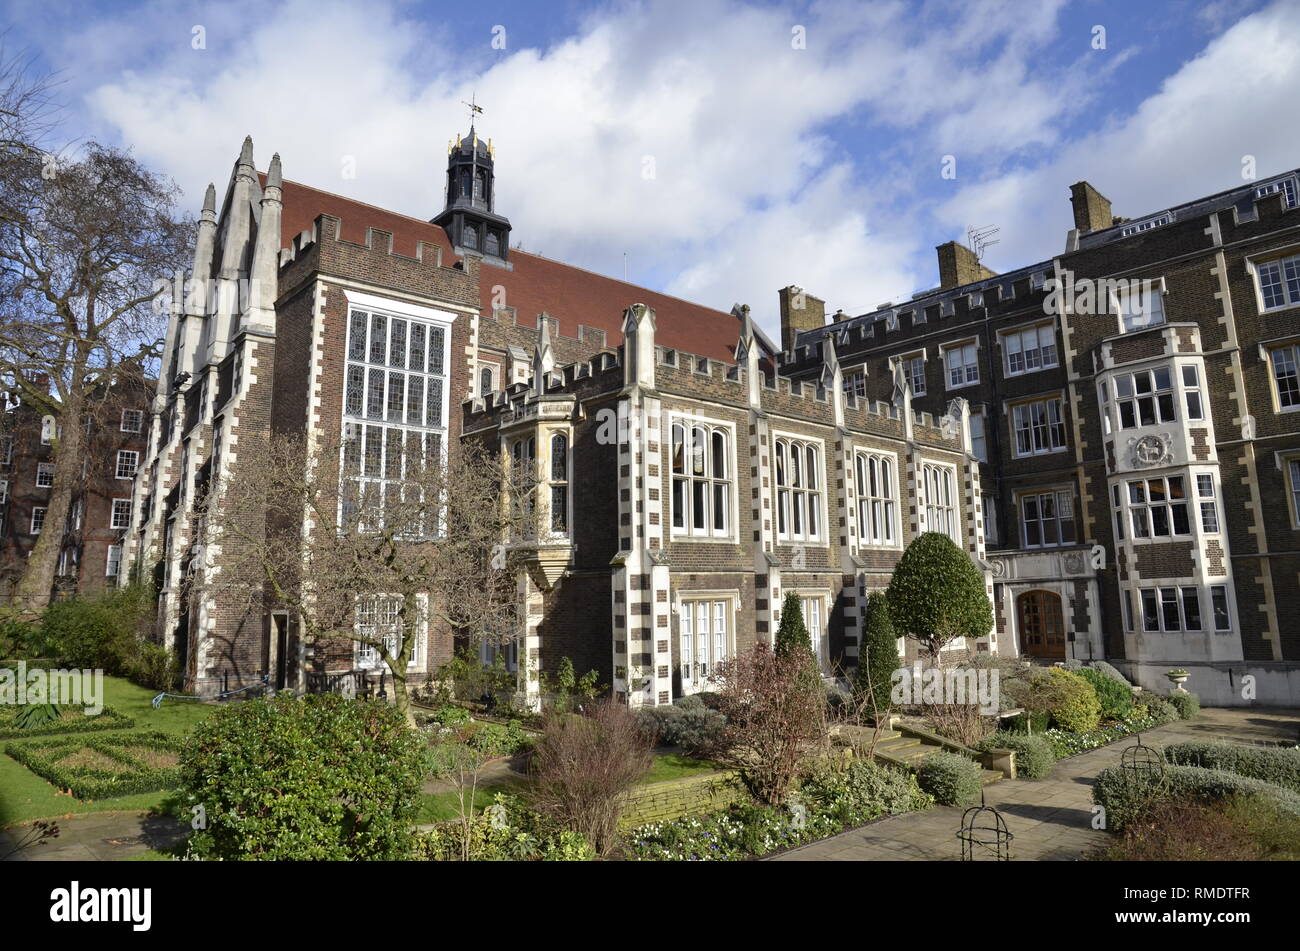 Middle temple Hall, one of the four Inns of Court in the temple area of the City of London - Stock Image